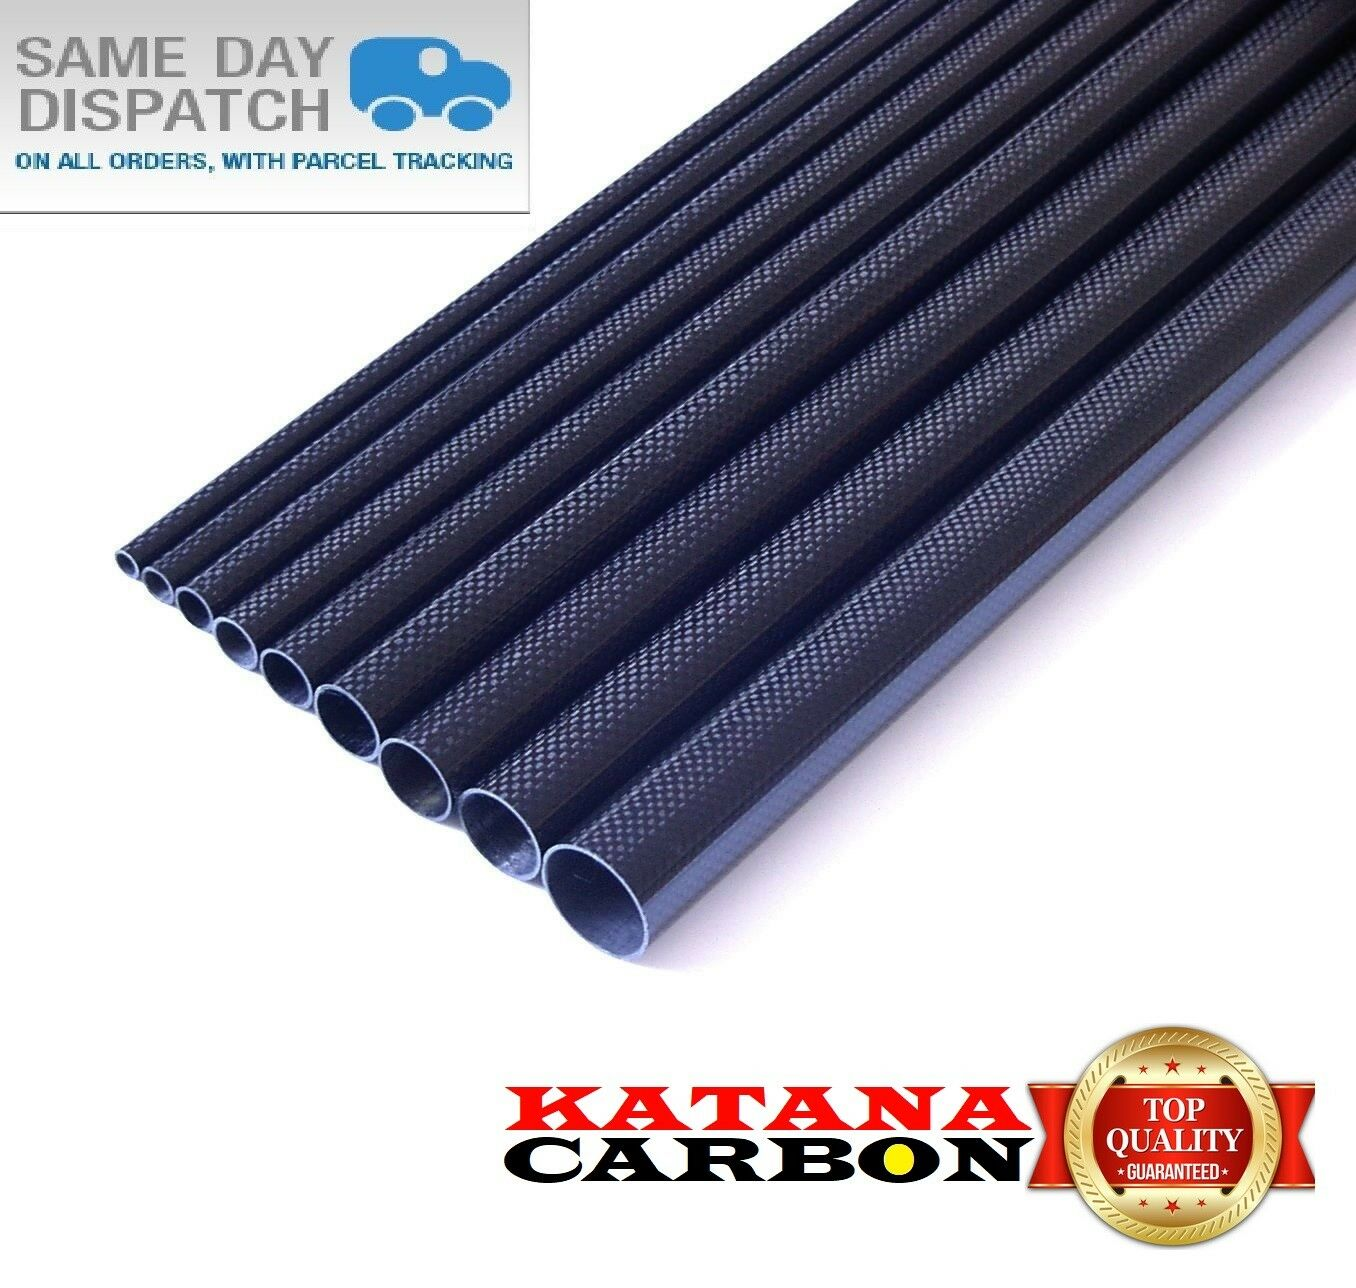 1 x OD 32mm x ID 30mm x 1500mm (1.5 m) 3k Carbon Fiber Tube (Roll Wrapped) Fibre